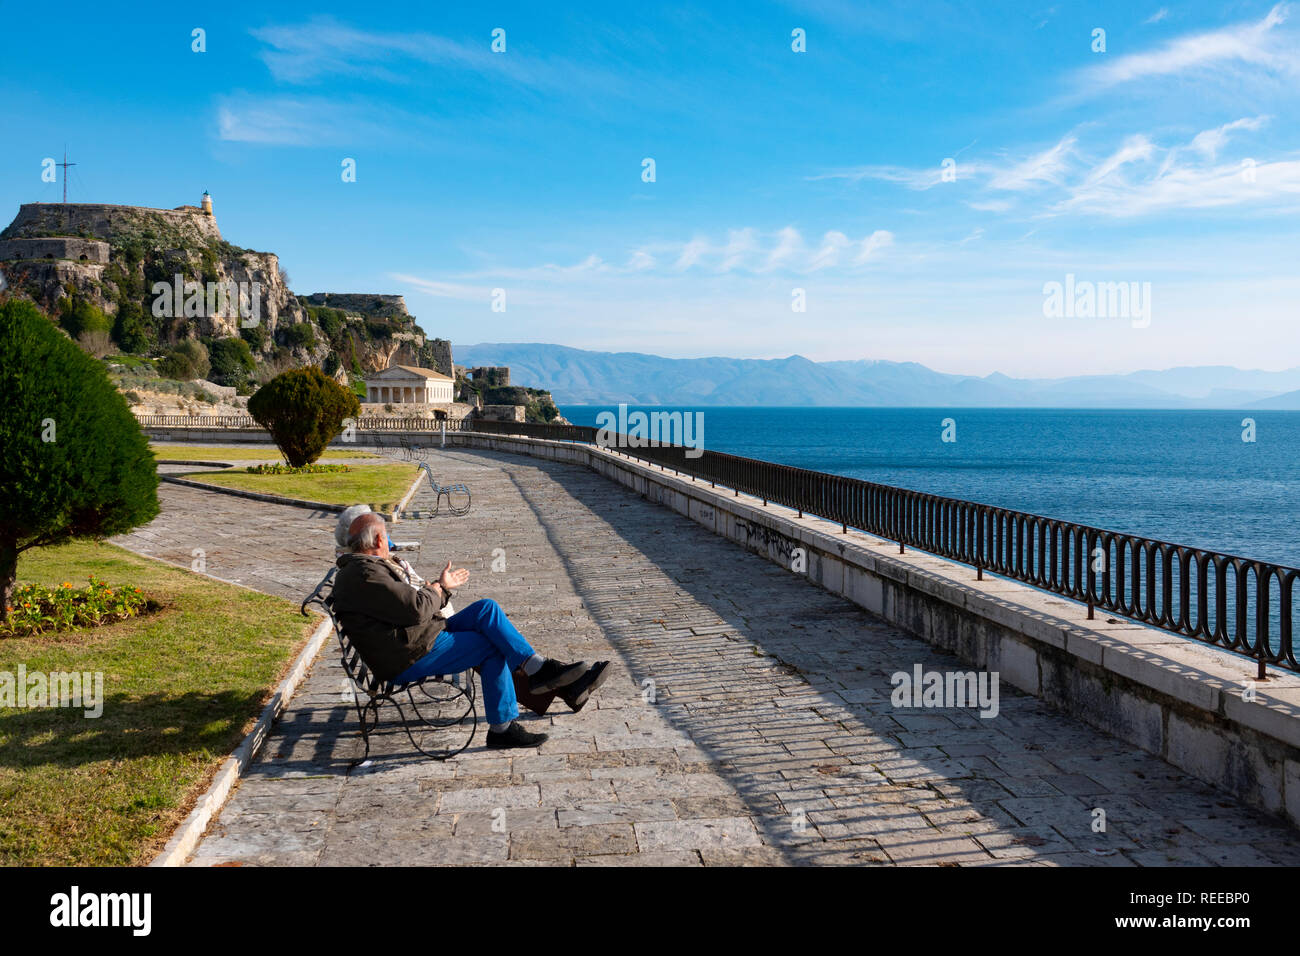 greece-corfu-corfu-town-an-elderly-couple-sits-along-the-seafront-near-the-old-fortress-taking-in-the-sun-REEBP0.jpg